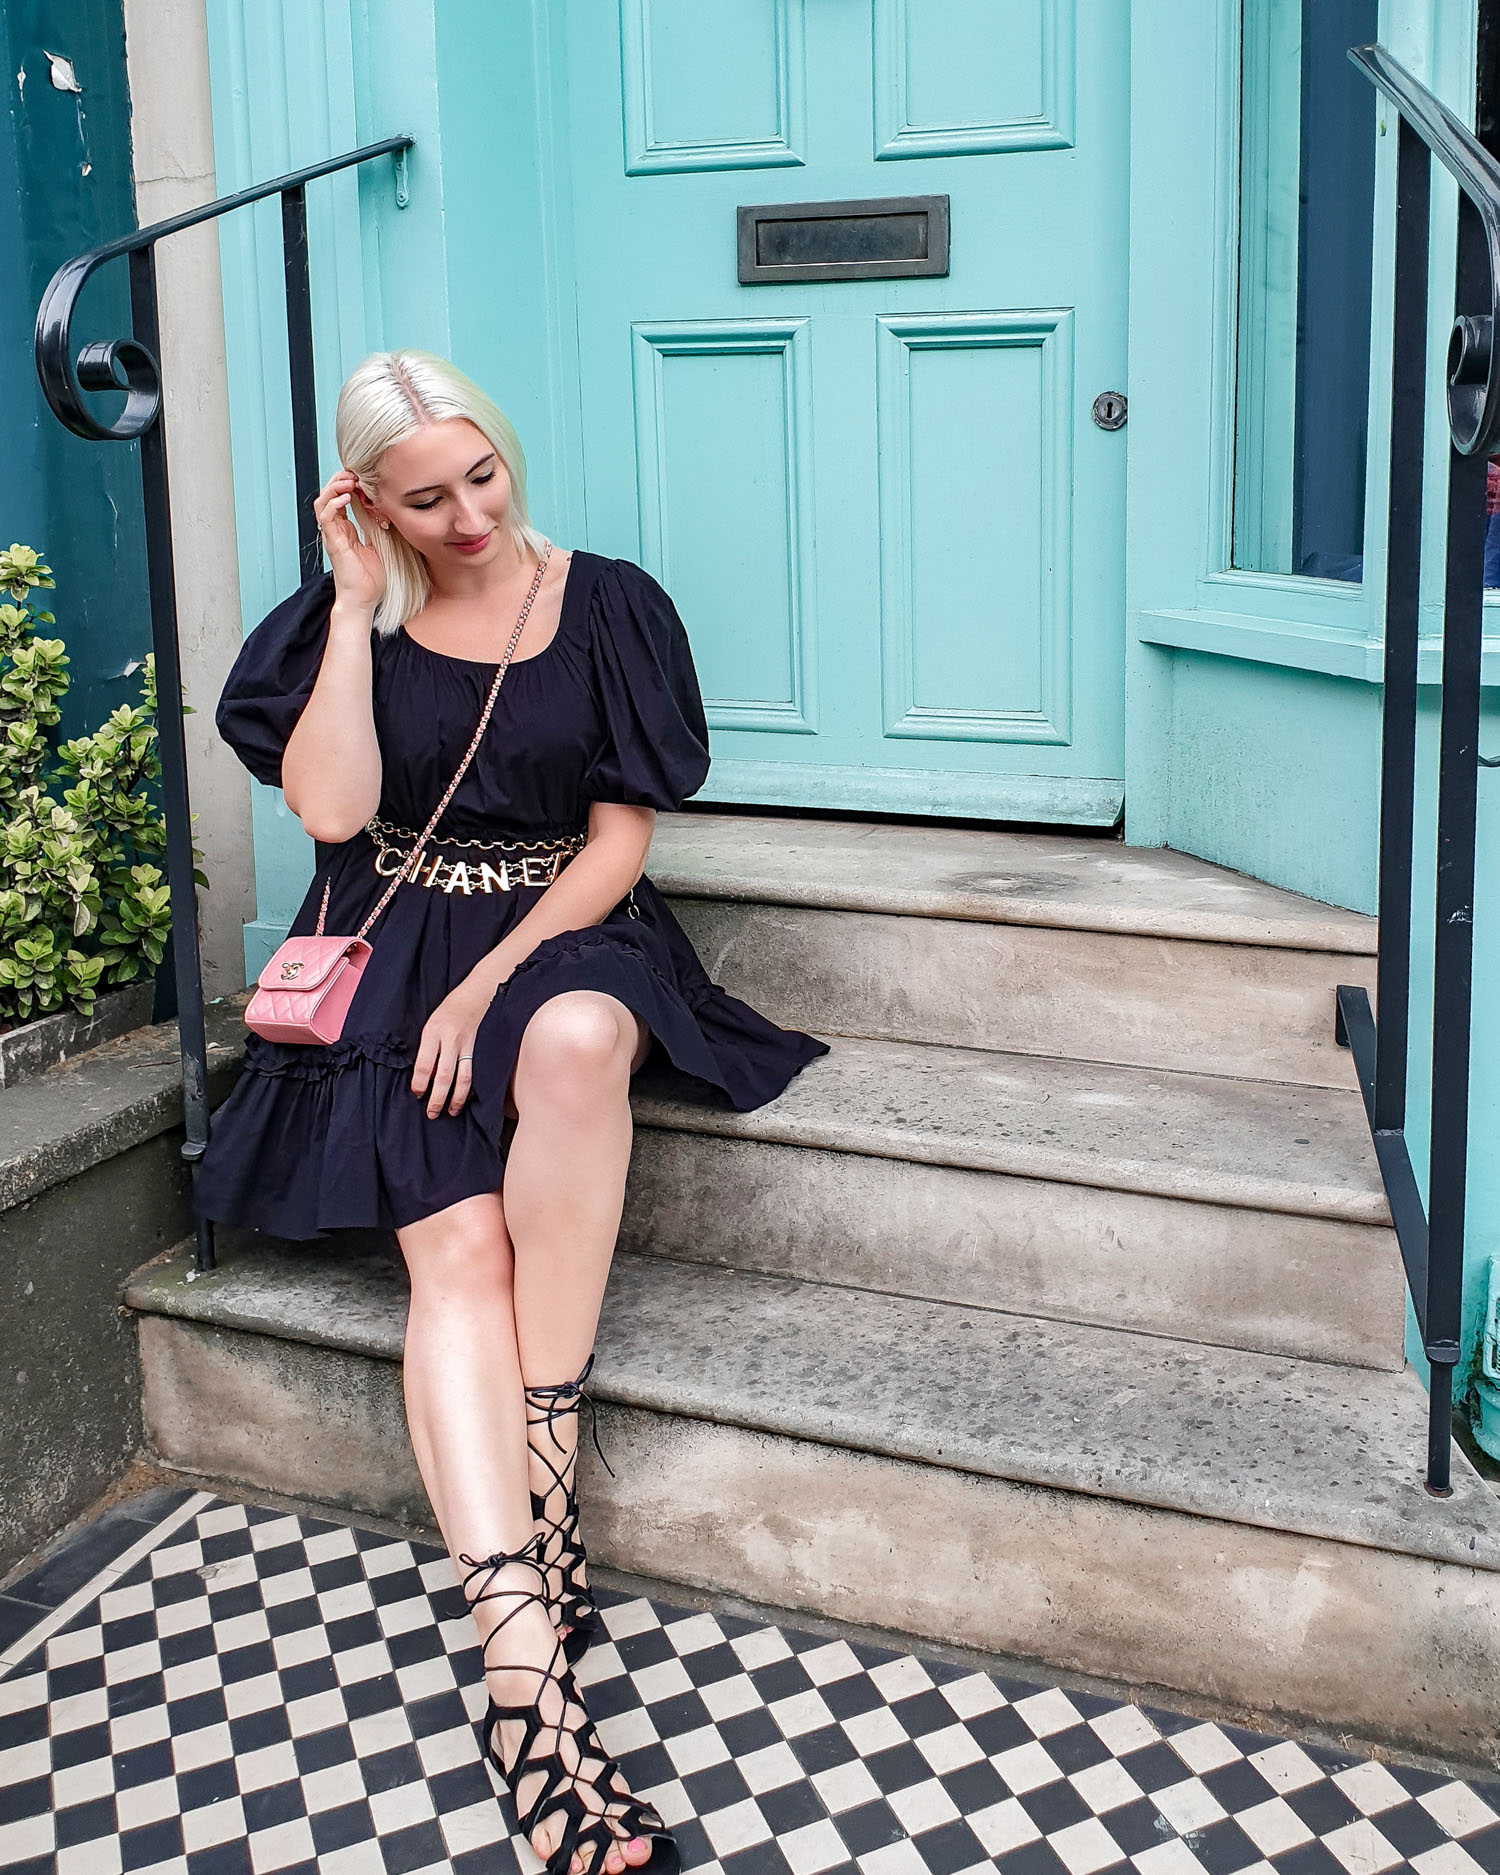 & Other Stories puff sleeve dress outfit | sitting on a stoop in London | pink Chanel bag and gladiator sandals